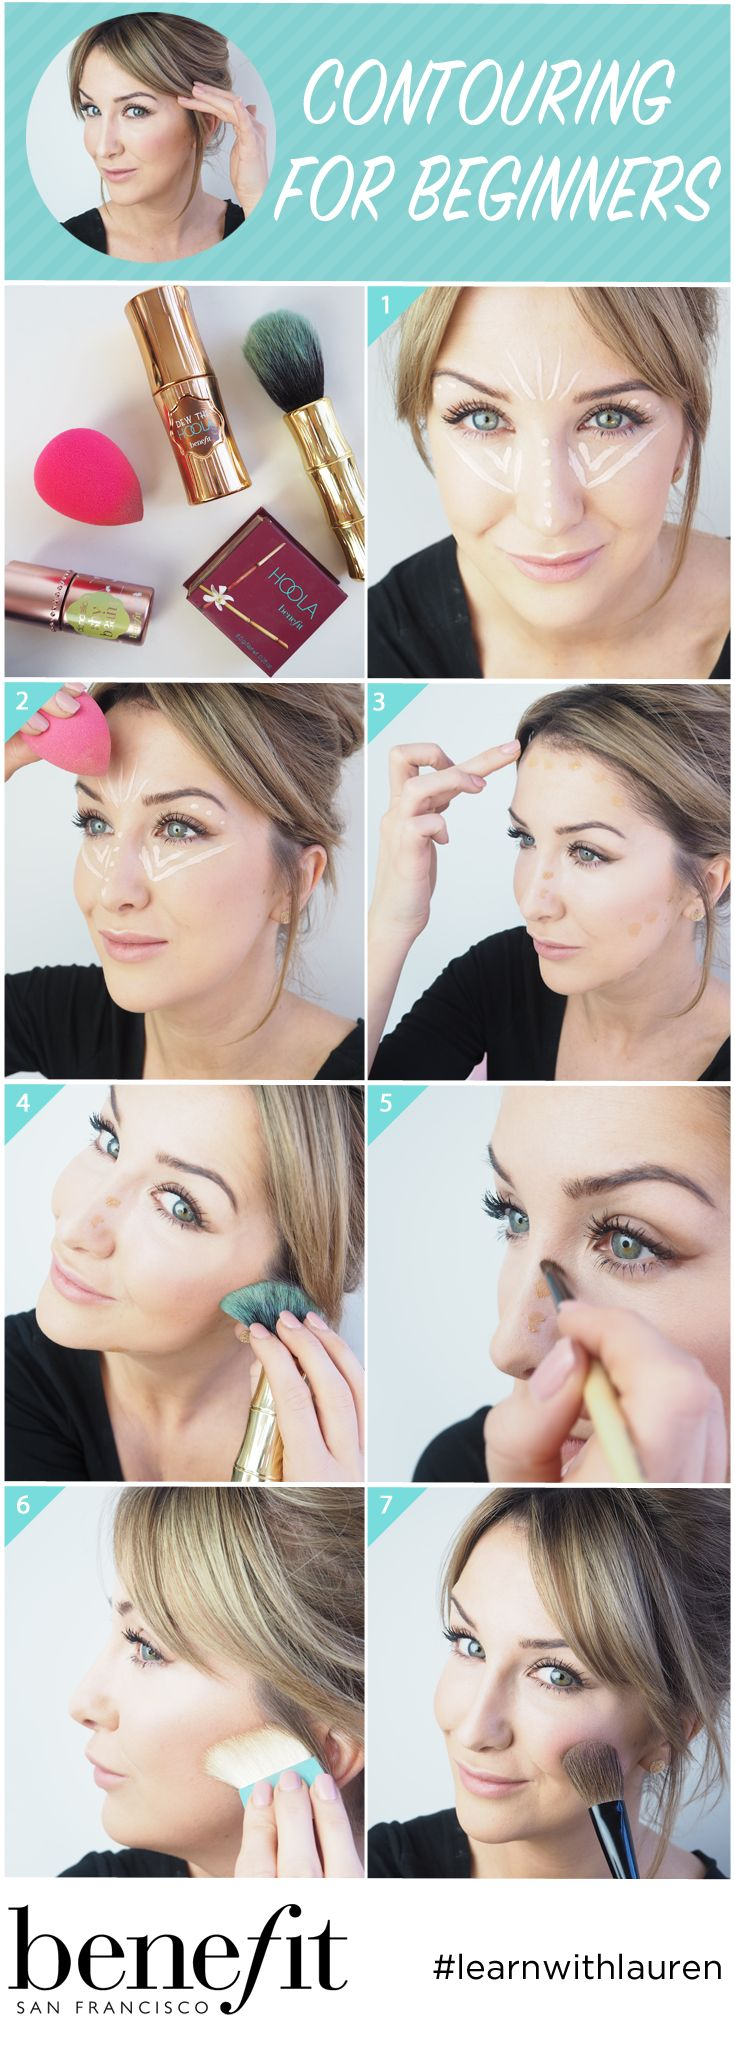 Contouring for beginners using the new shy beam and dew the hoola!